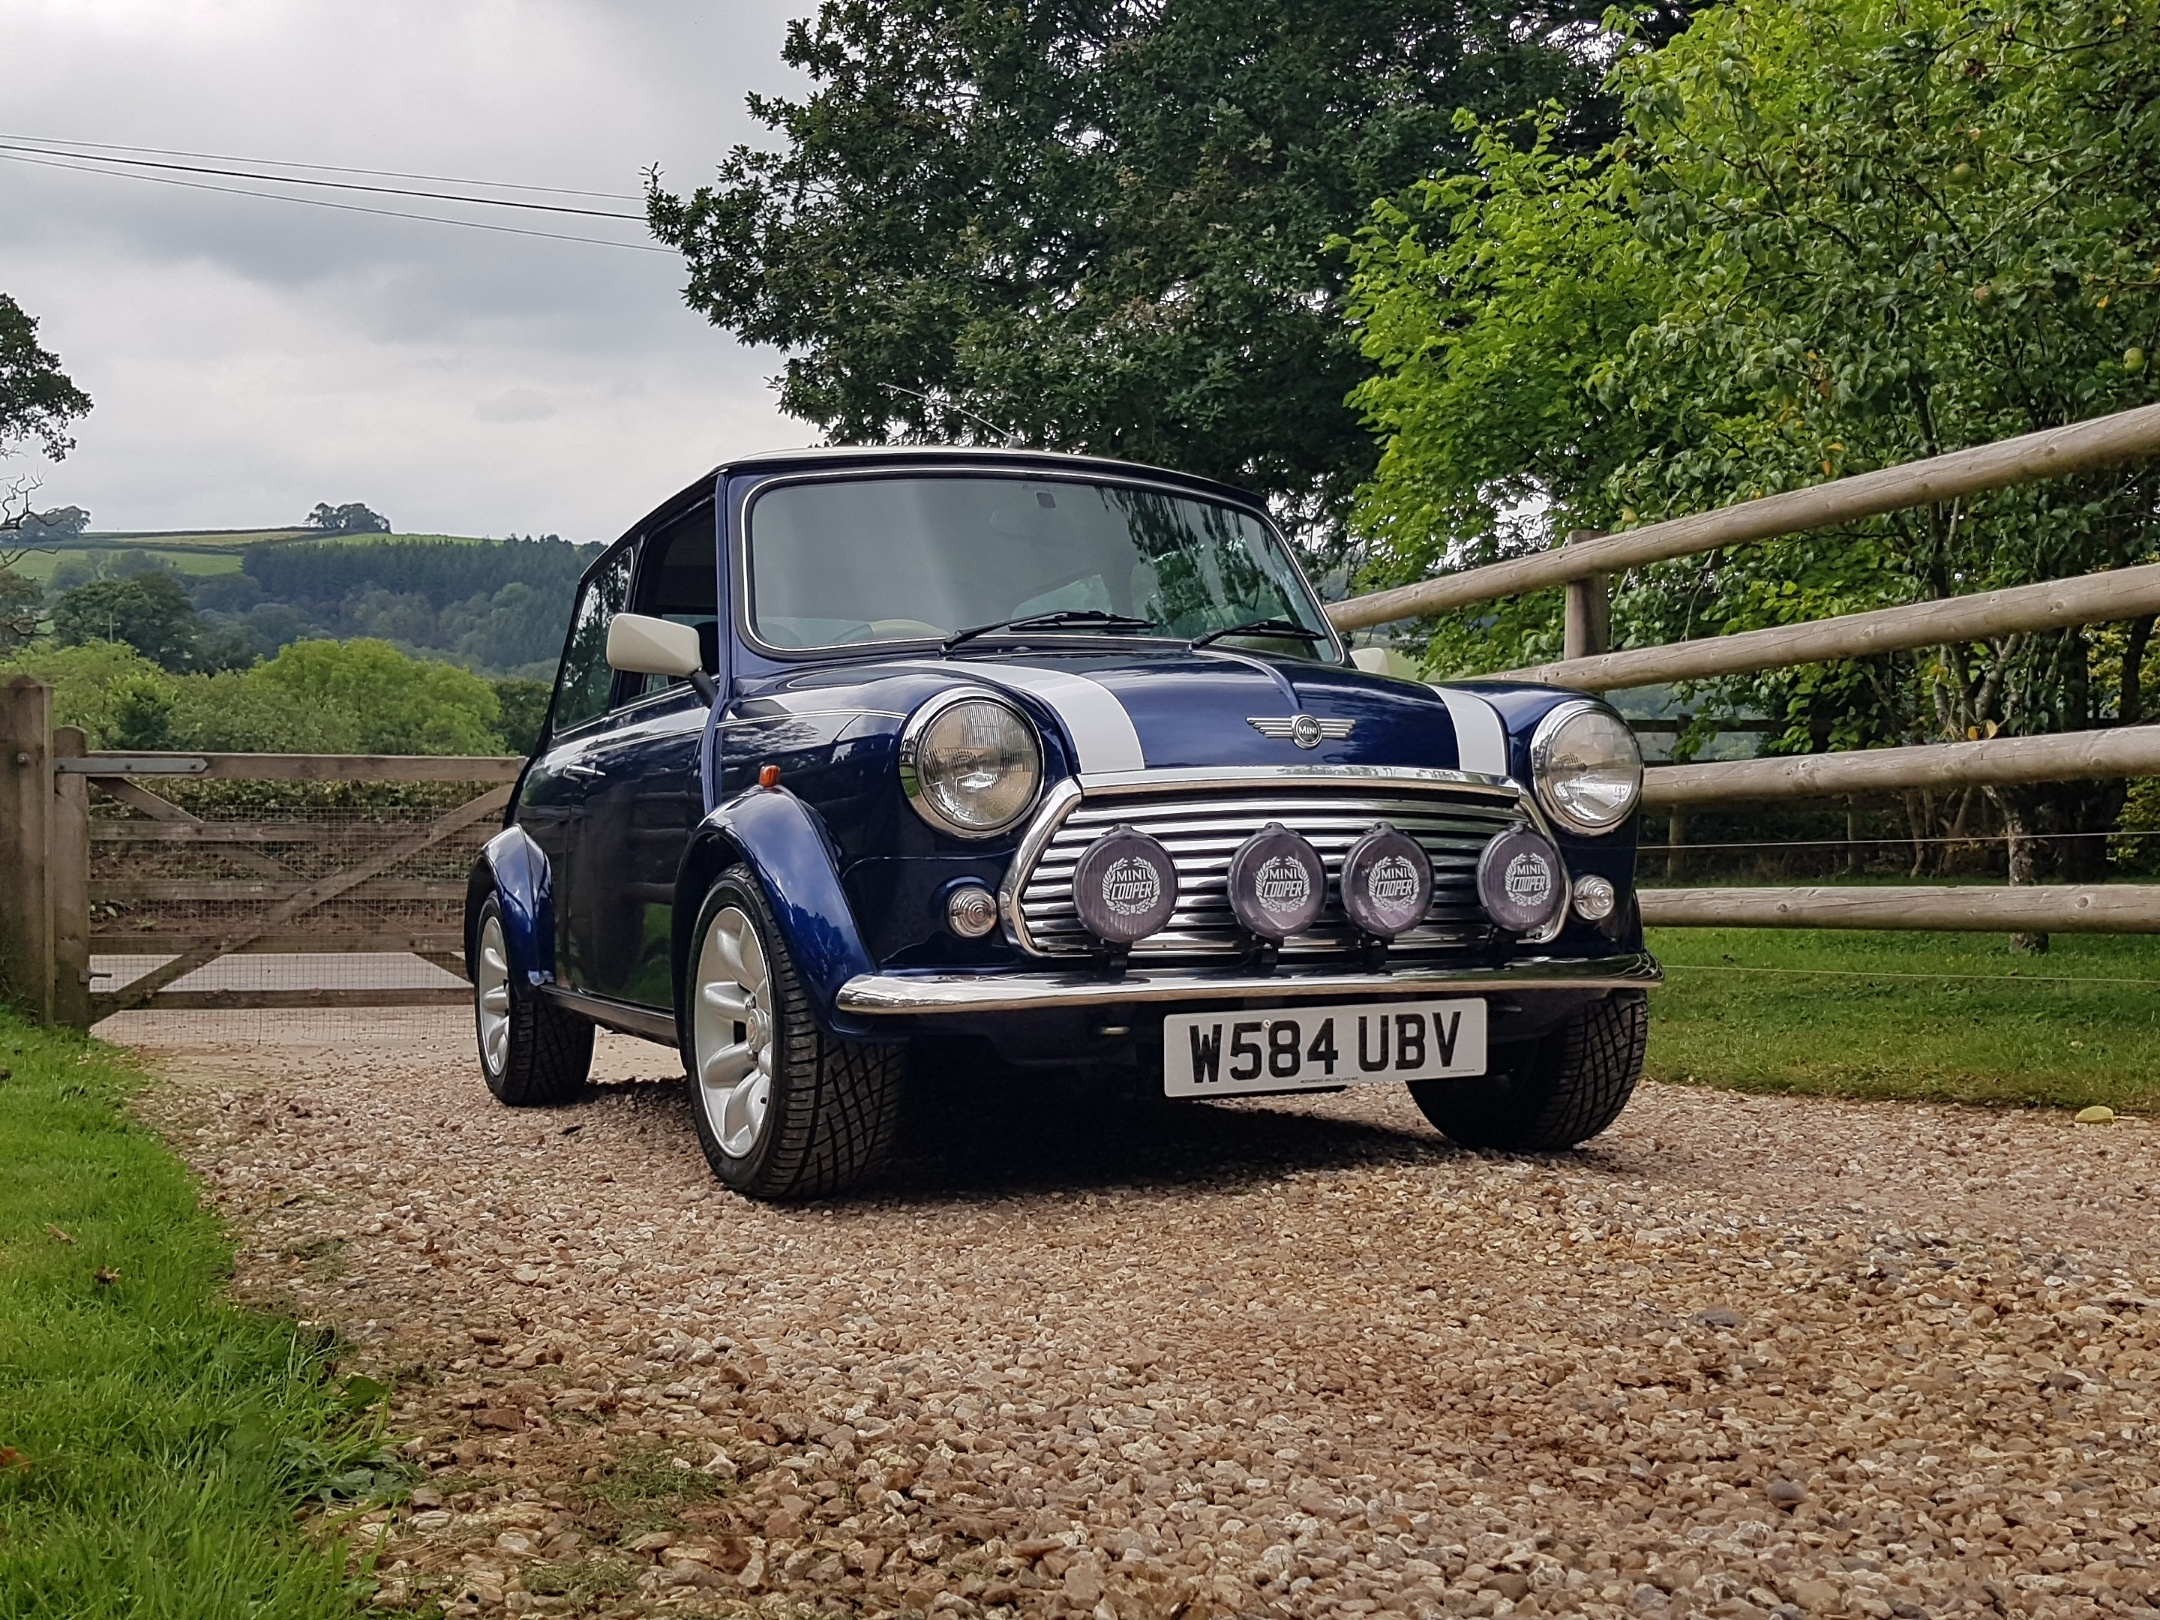 ** NOW SOLD ** 2000 Rover Mini Cooper Sport On Just 25750 Miles From New!